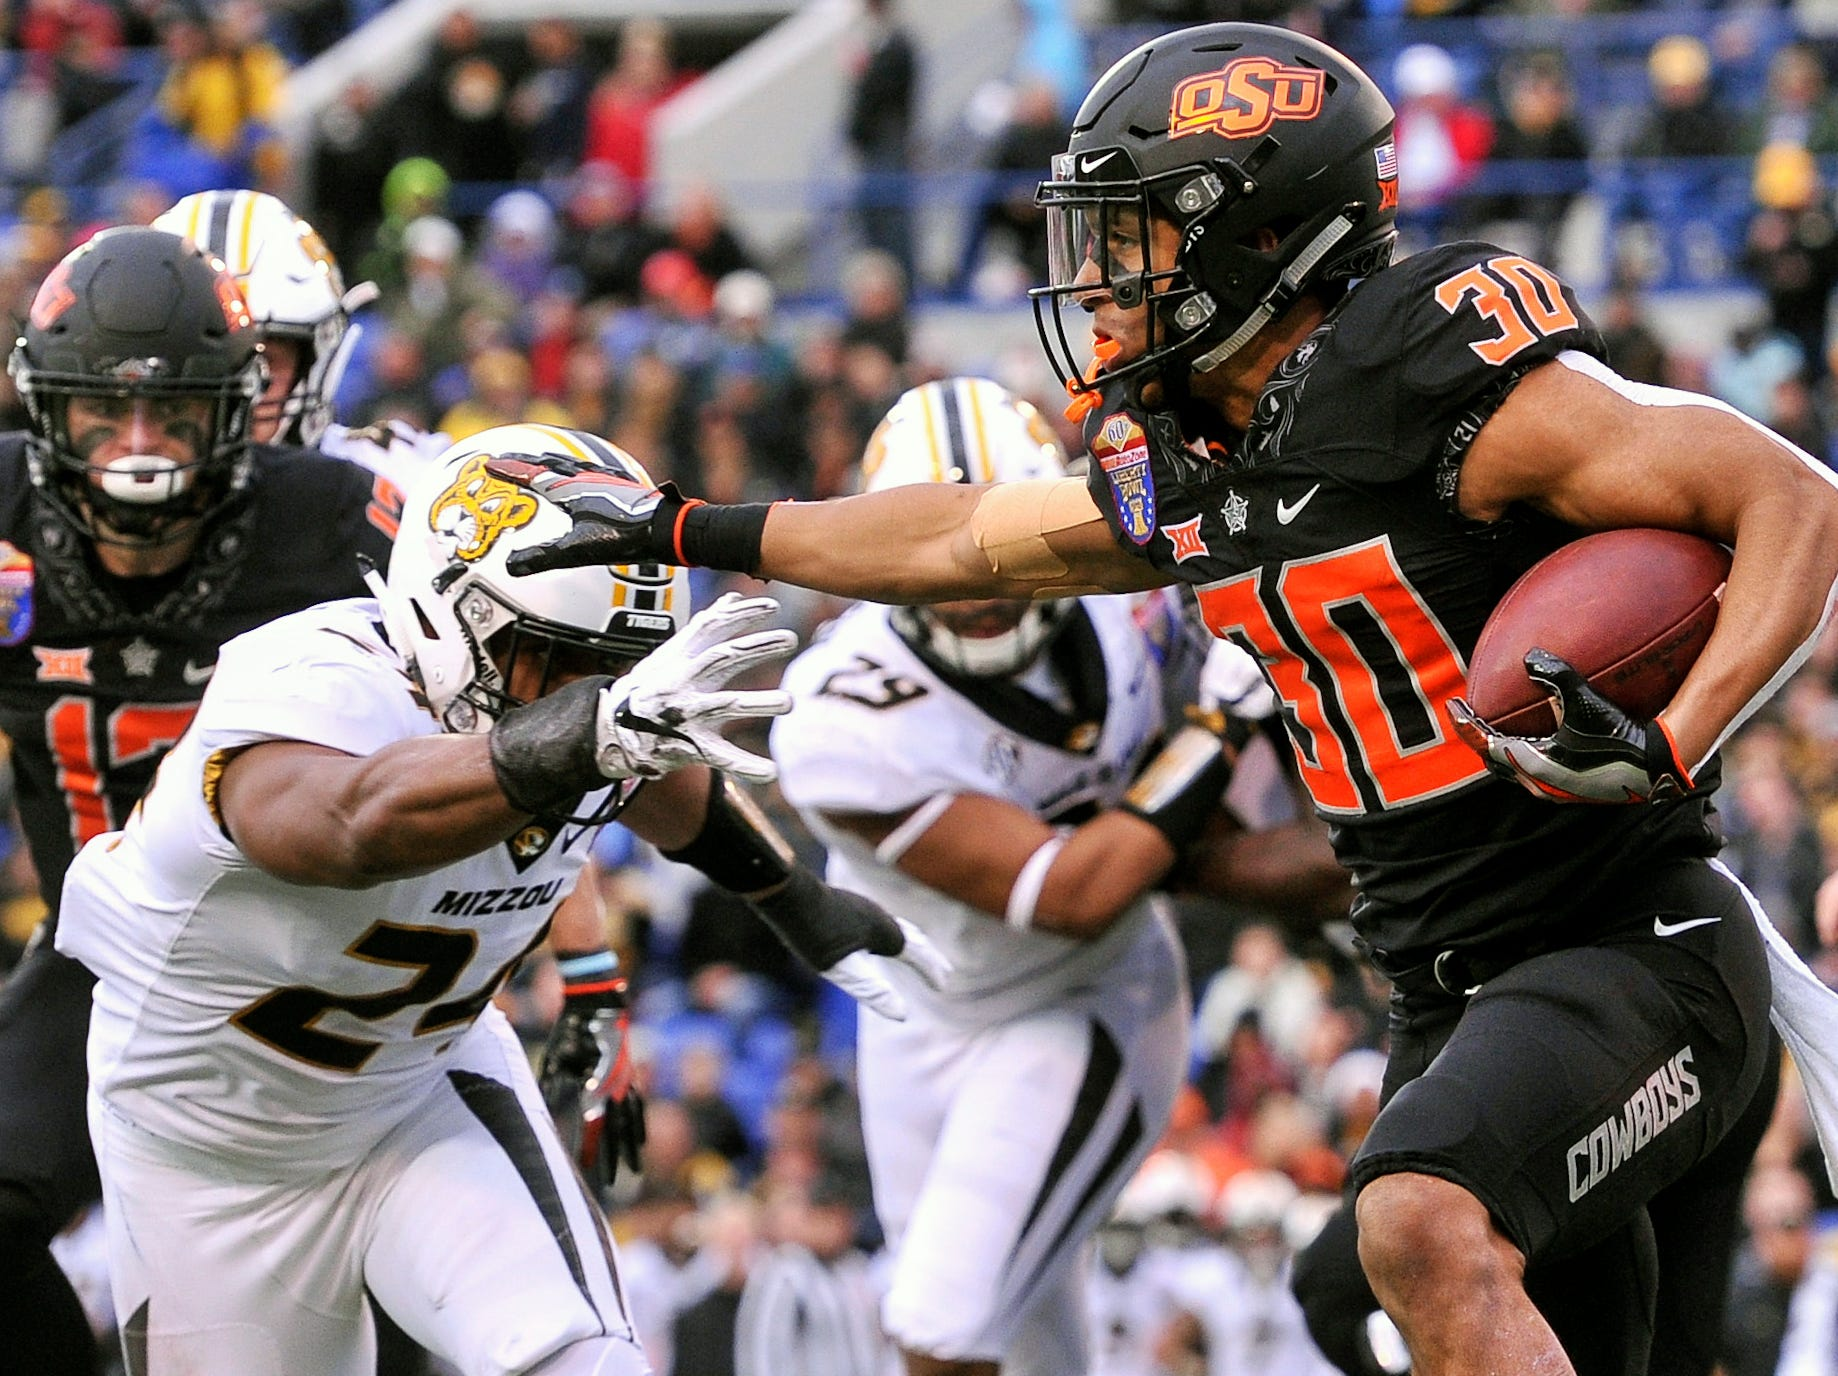 Oklahoma State Cowboys running back Chuba Hubbard (30) carries the ball against Missouri Tigers linebacker Terez Hall (24) during the first half in the Liberty Bowl.